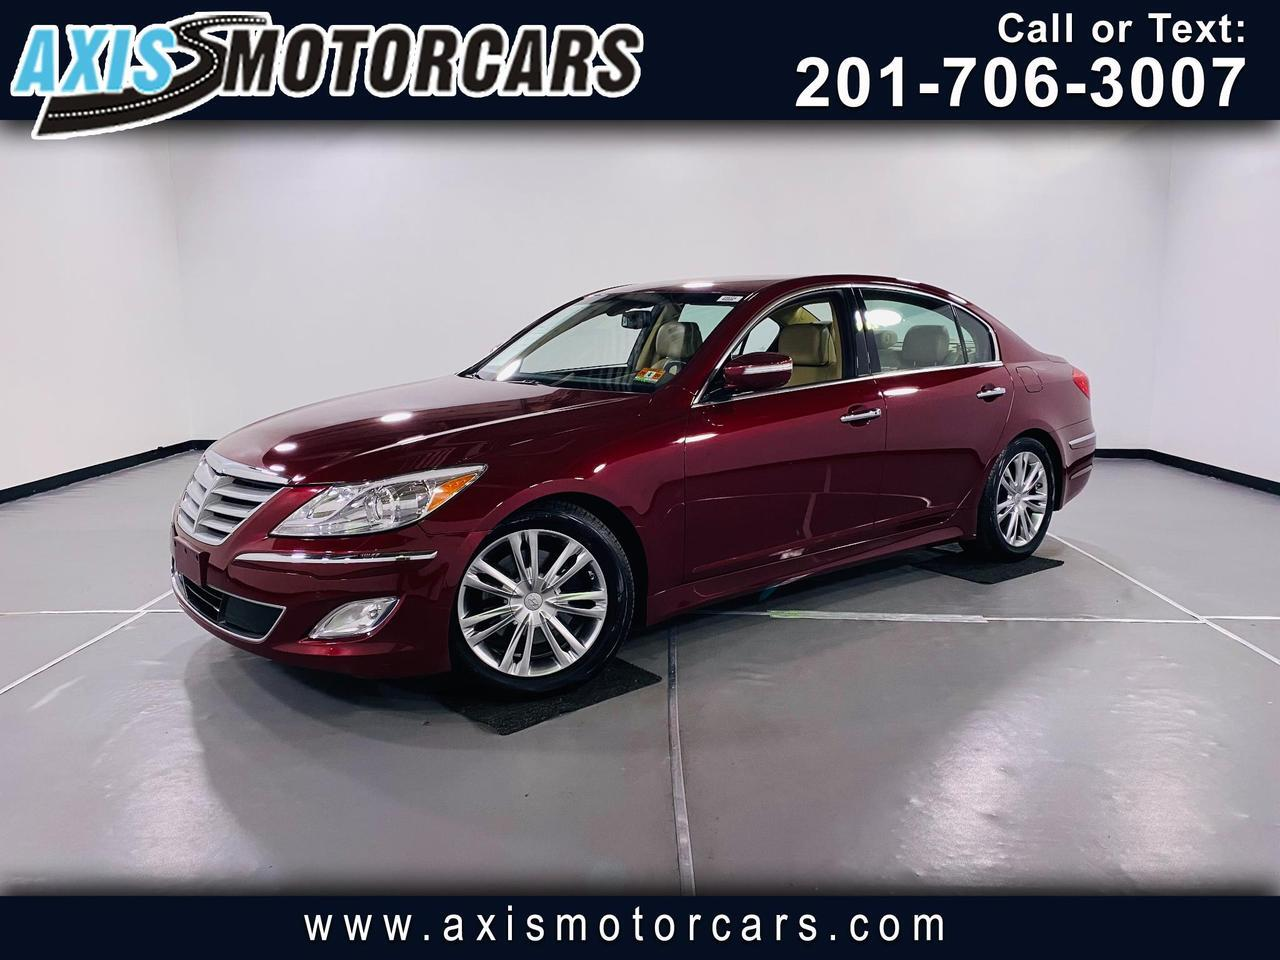 2013 Hyundai Genesis 3.8 4dr w/Lexicon Sound System Sunroof Jersey City NJ